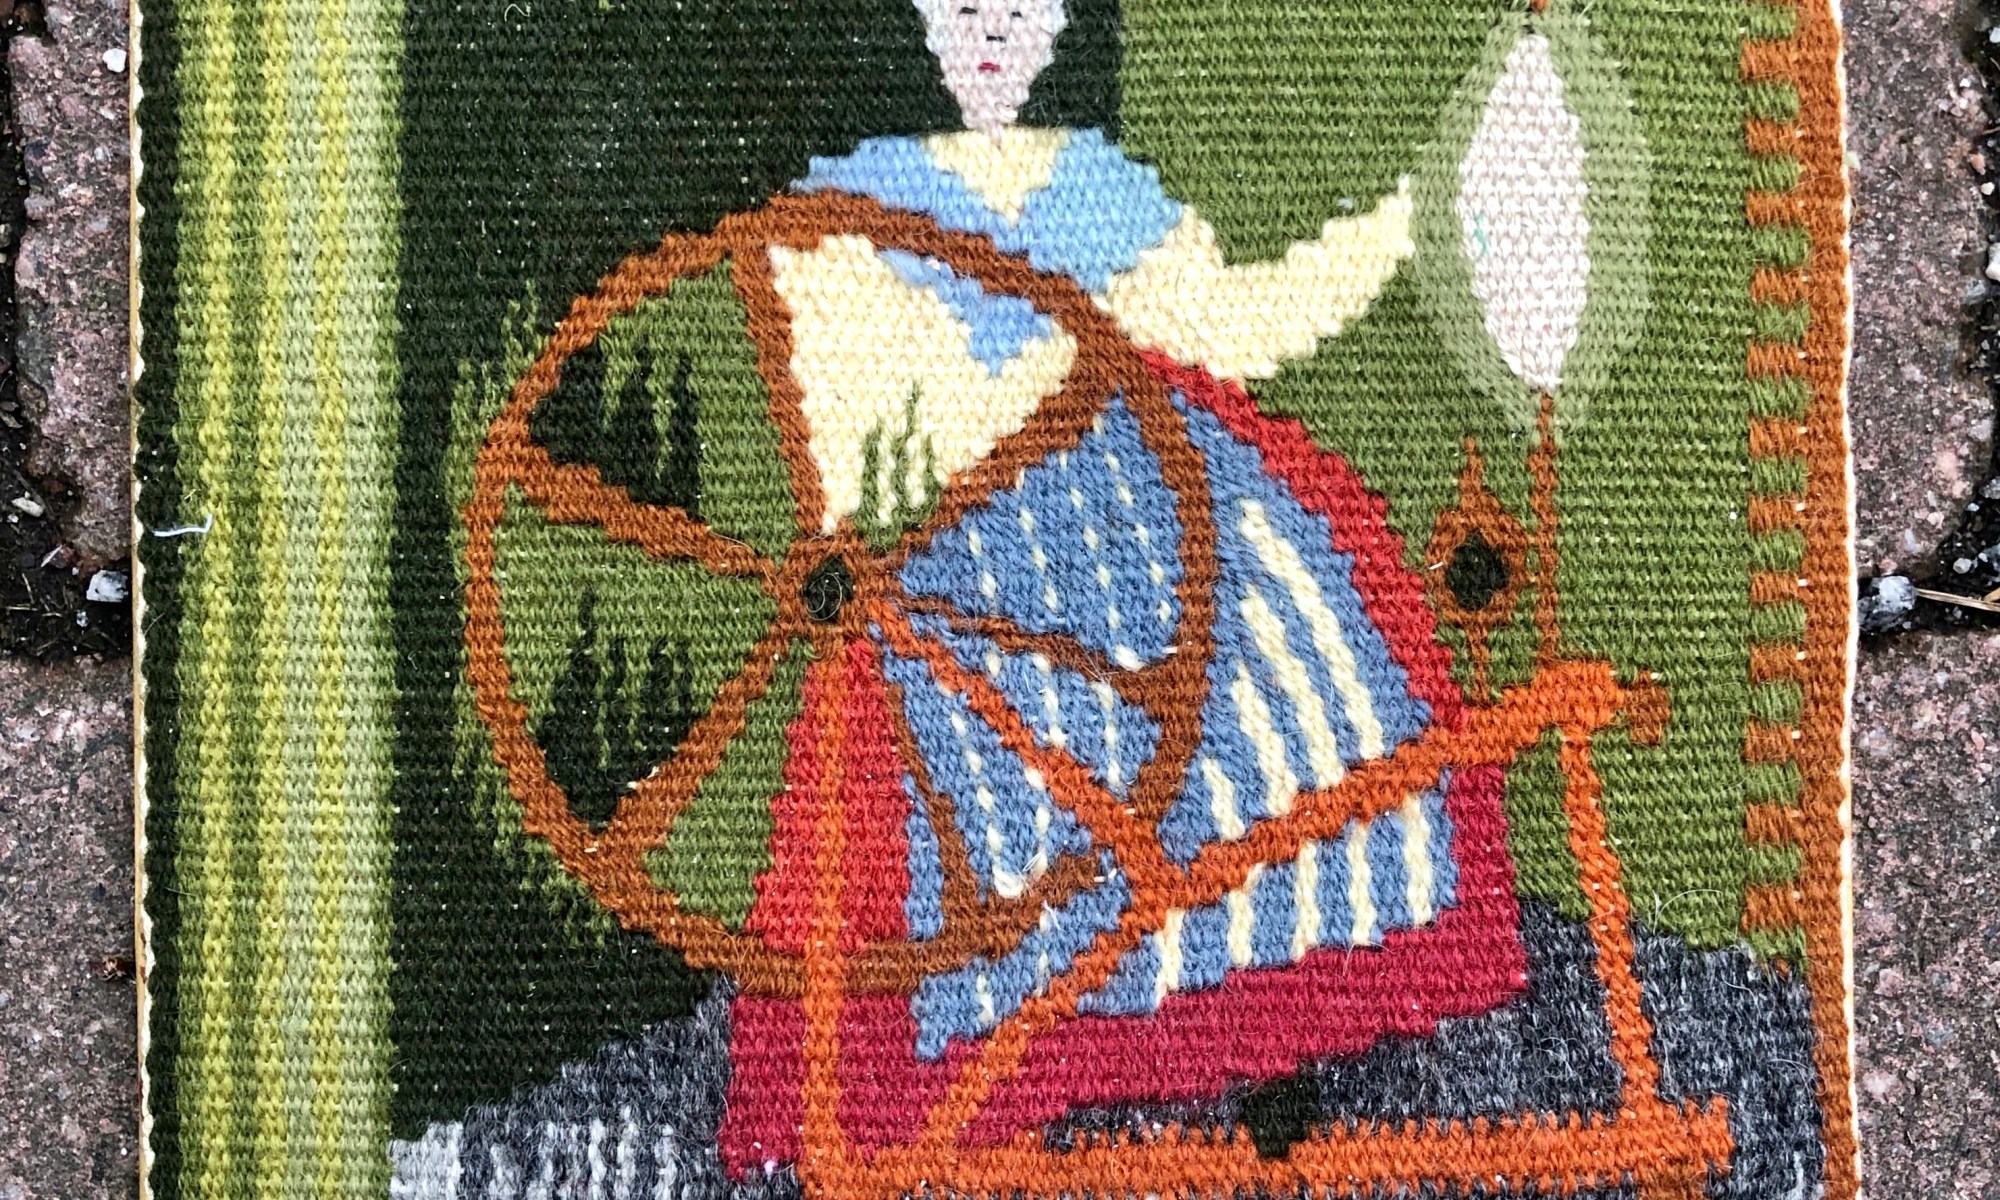 Flemish tapestry weave with a woman spinning on a spinning wheel.